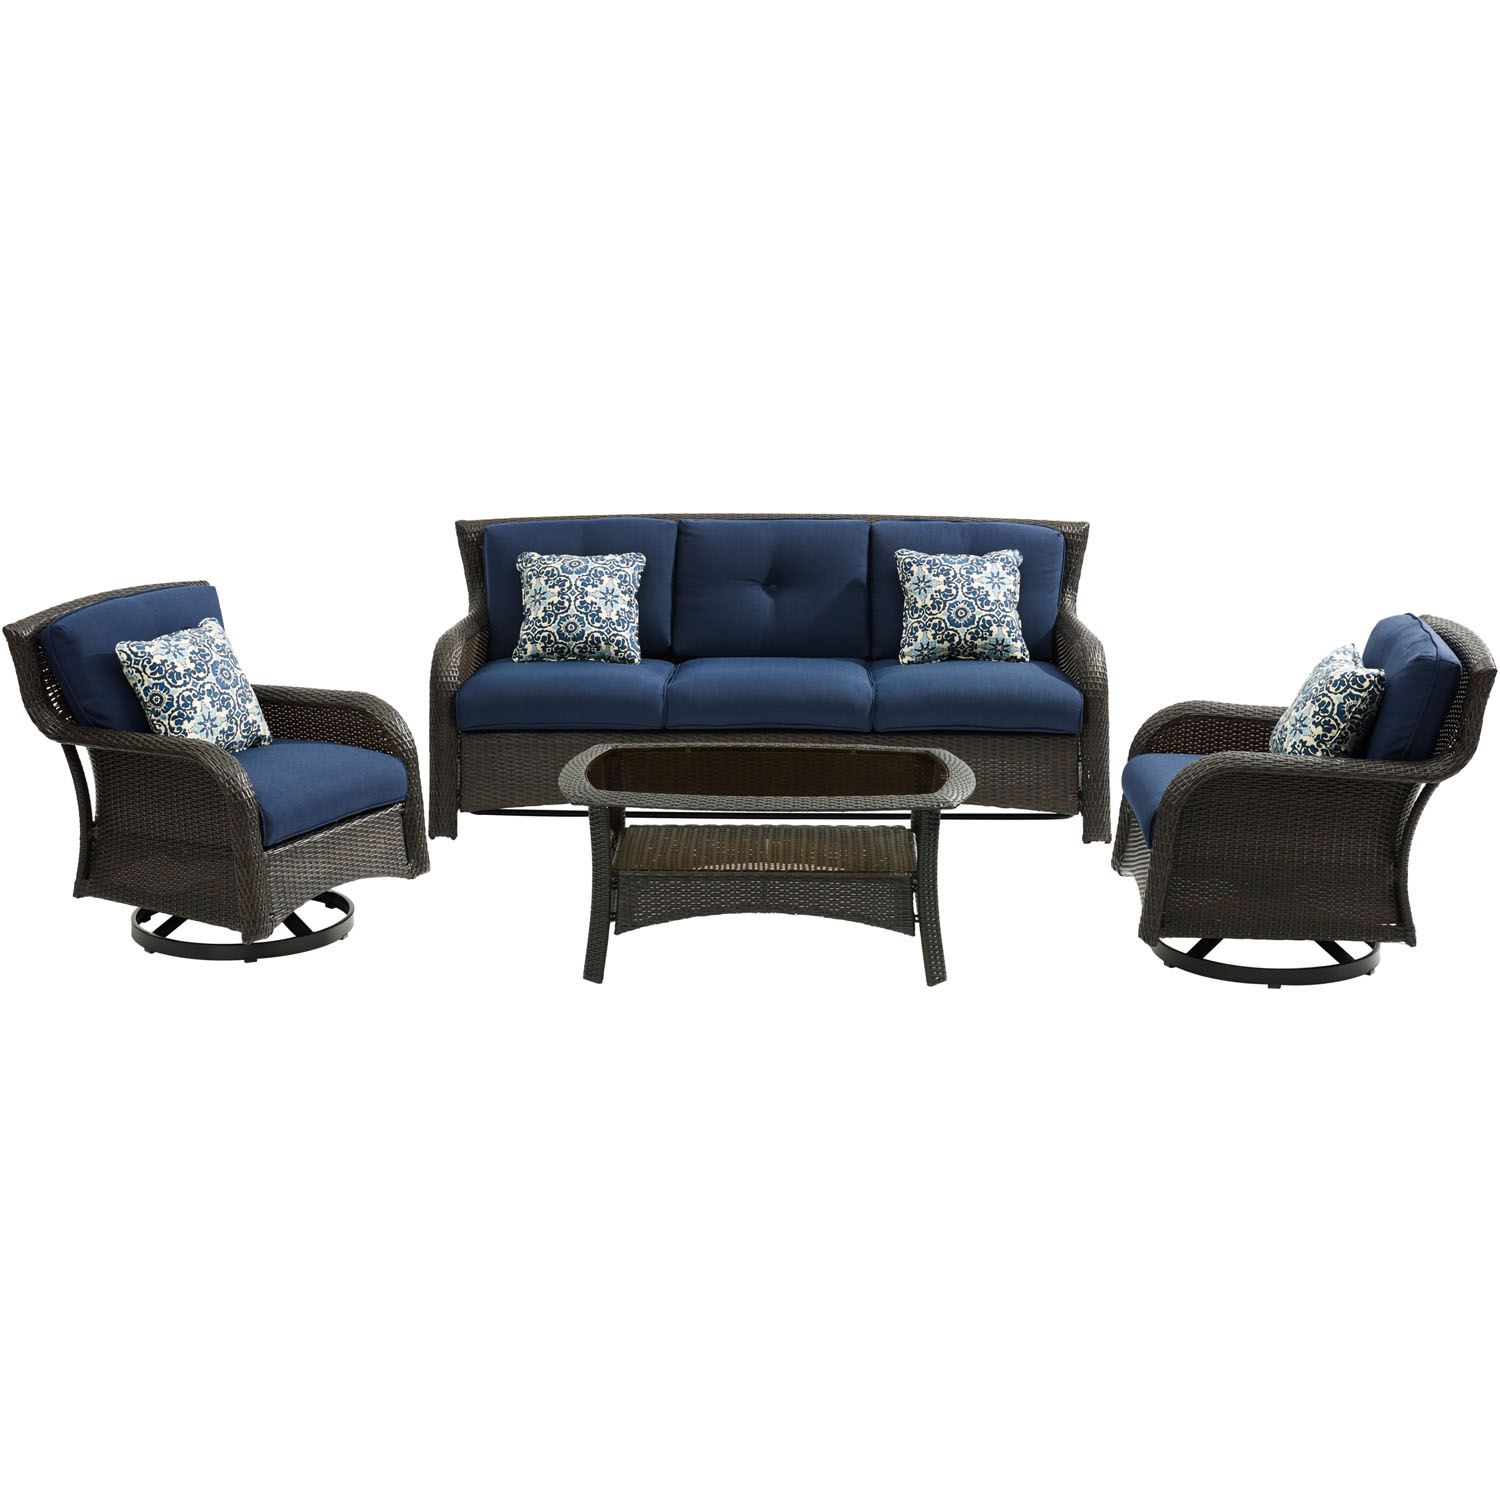 Hanover Strathmere 4-Piece Lounge Set in Navy Blue